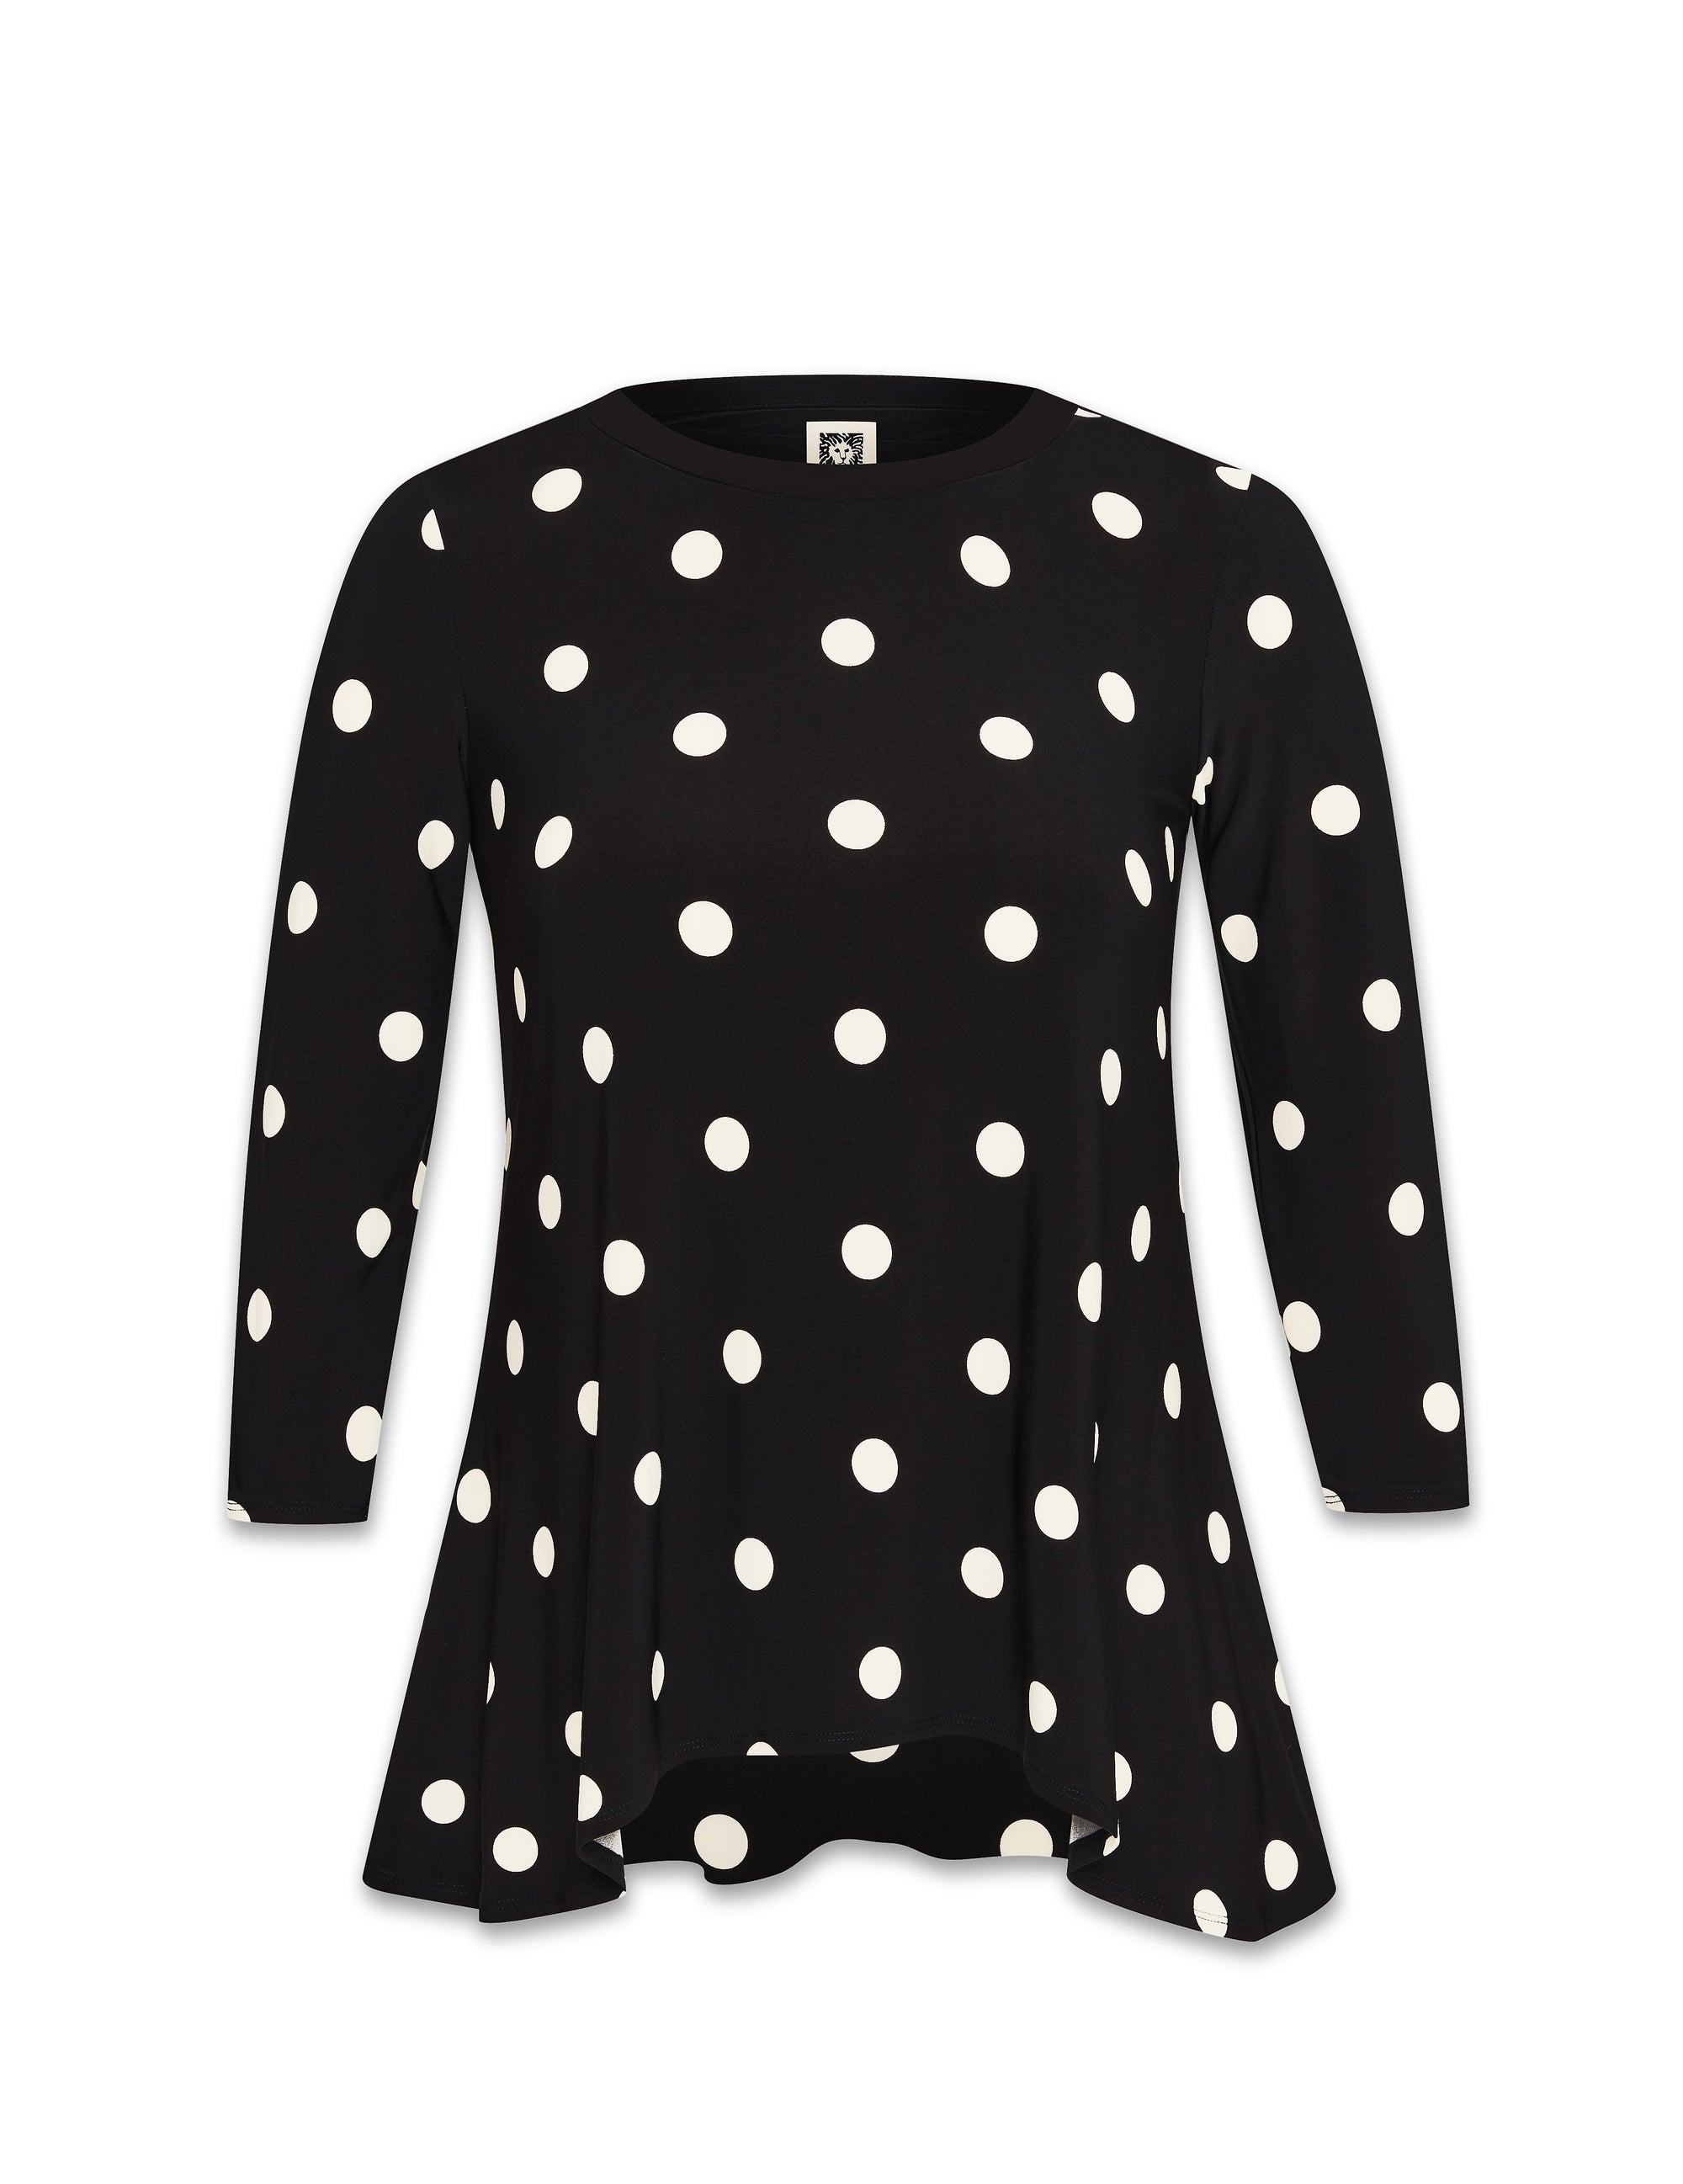 Anne Klein Black/White Large Dot Sharkbite Knit Top